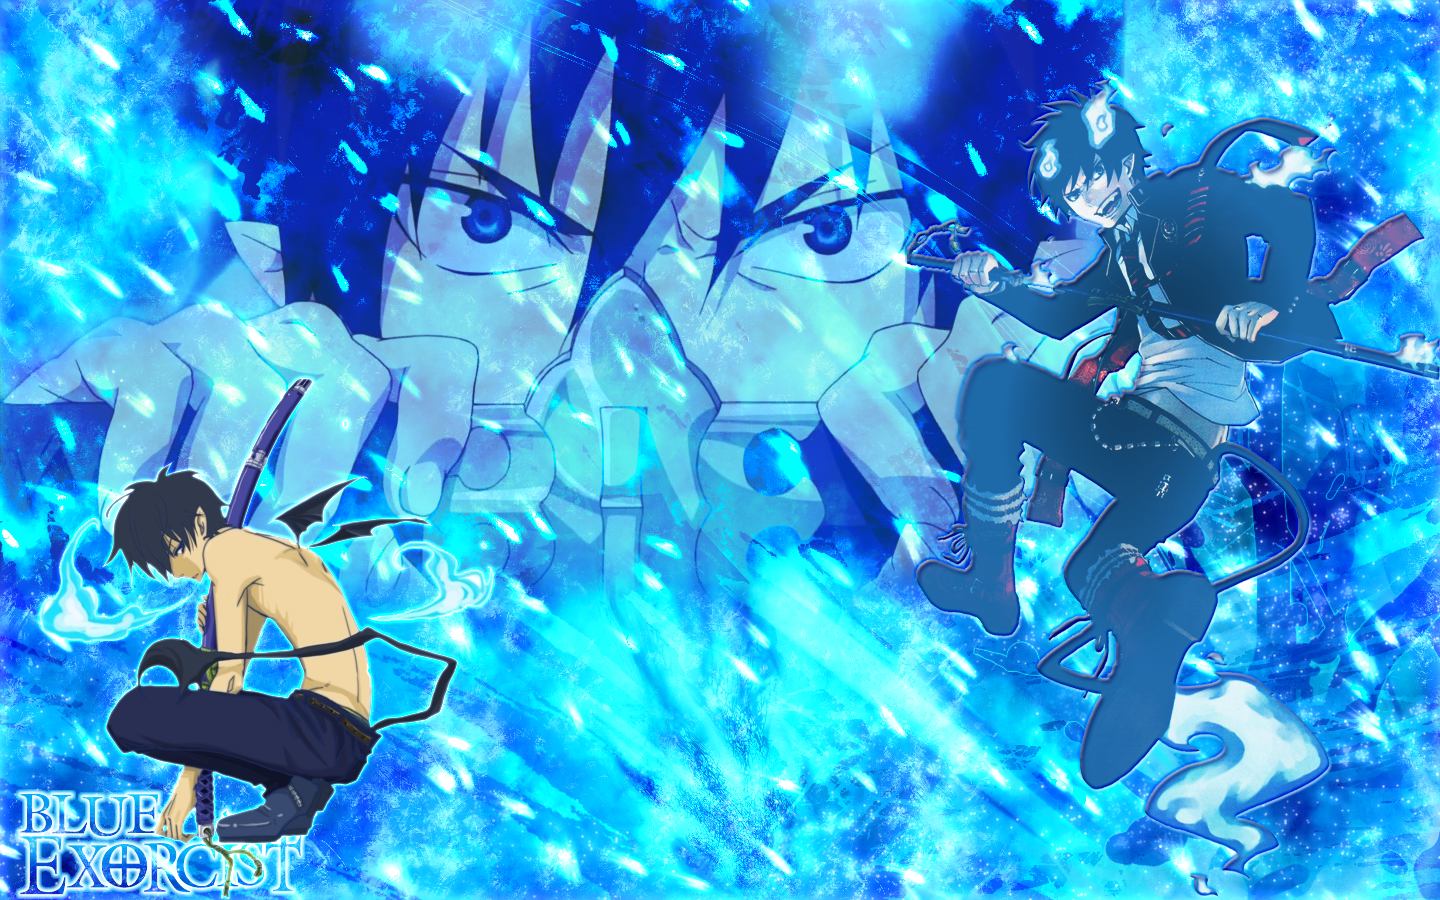 epic blue exorcist wallpaper - photo #13